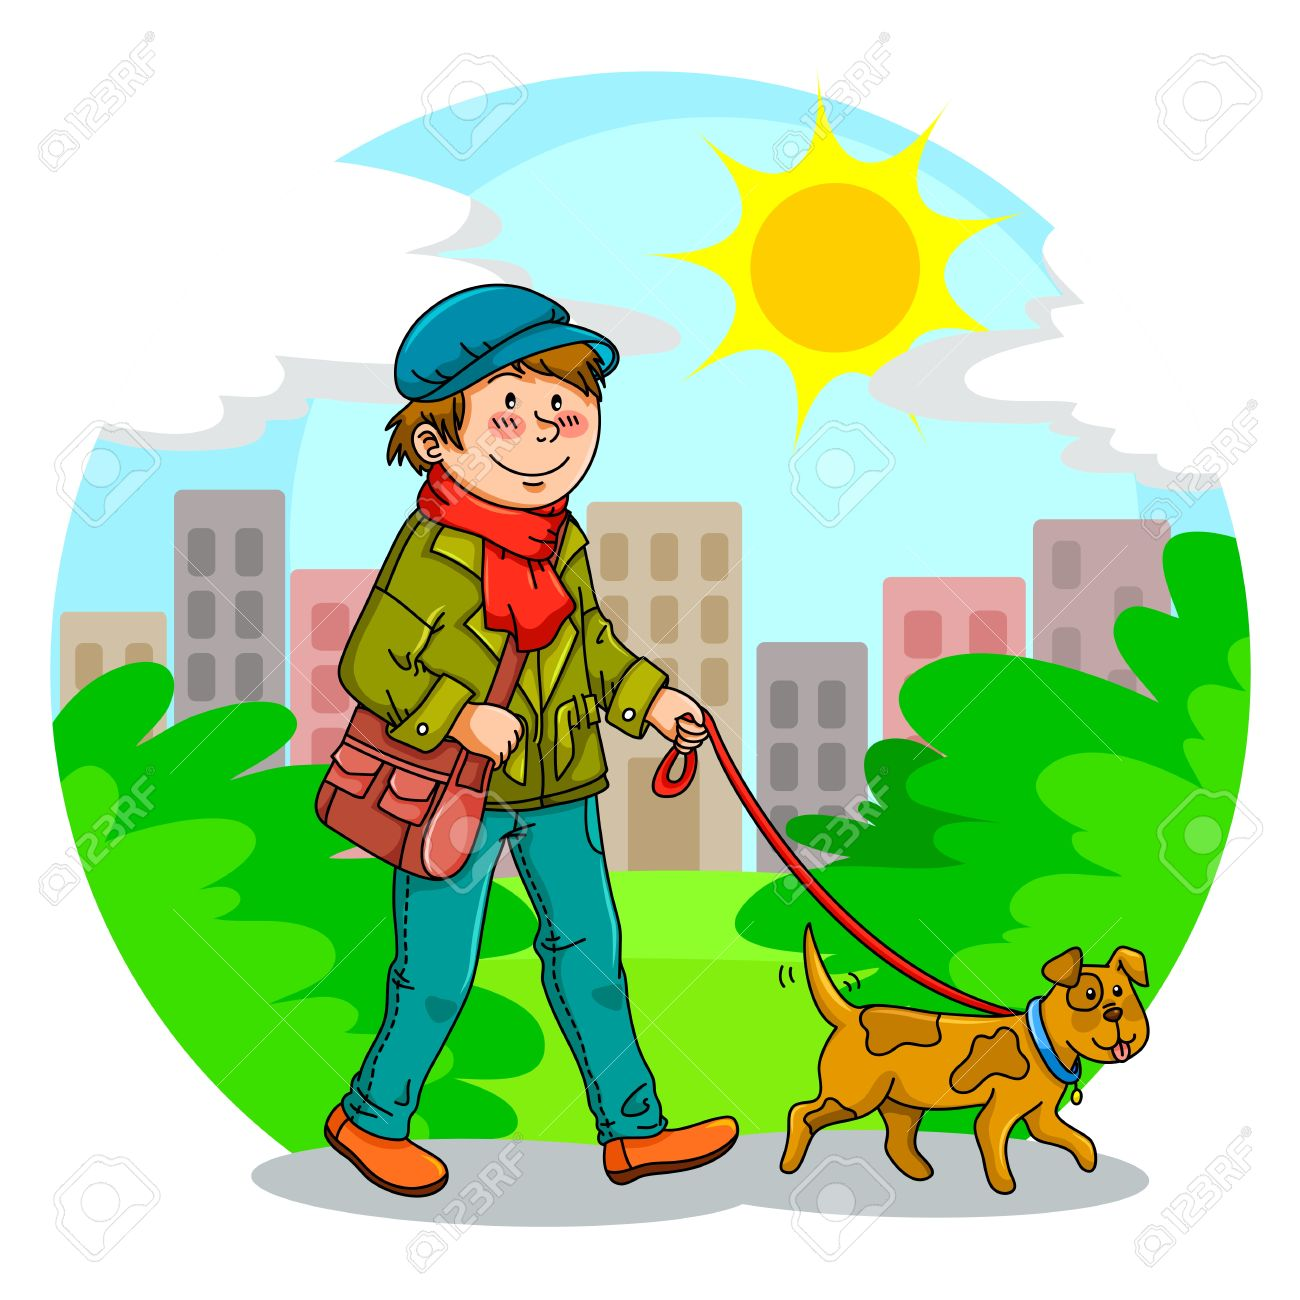 A walk in the park clipart image transparent stock Park Cartoon Clipart | Free download best Park Cartoon Clipart on ... image transparent stock